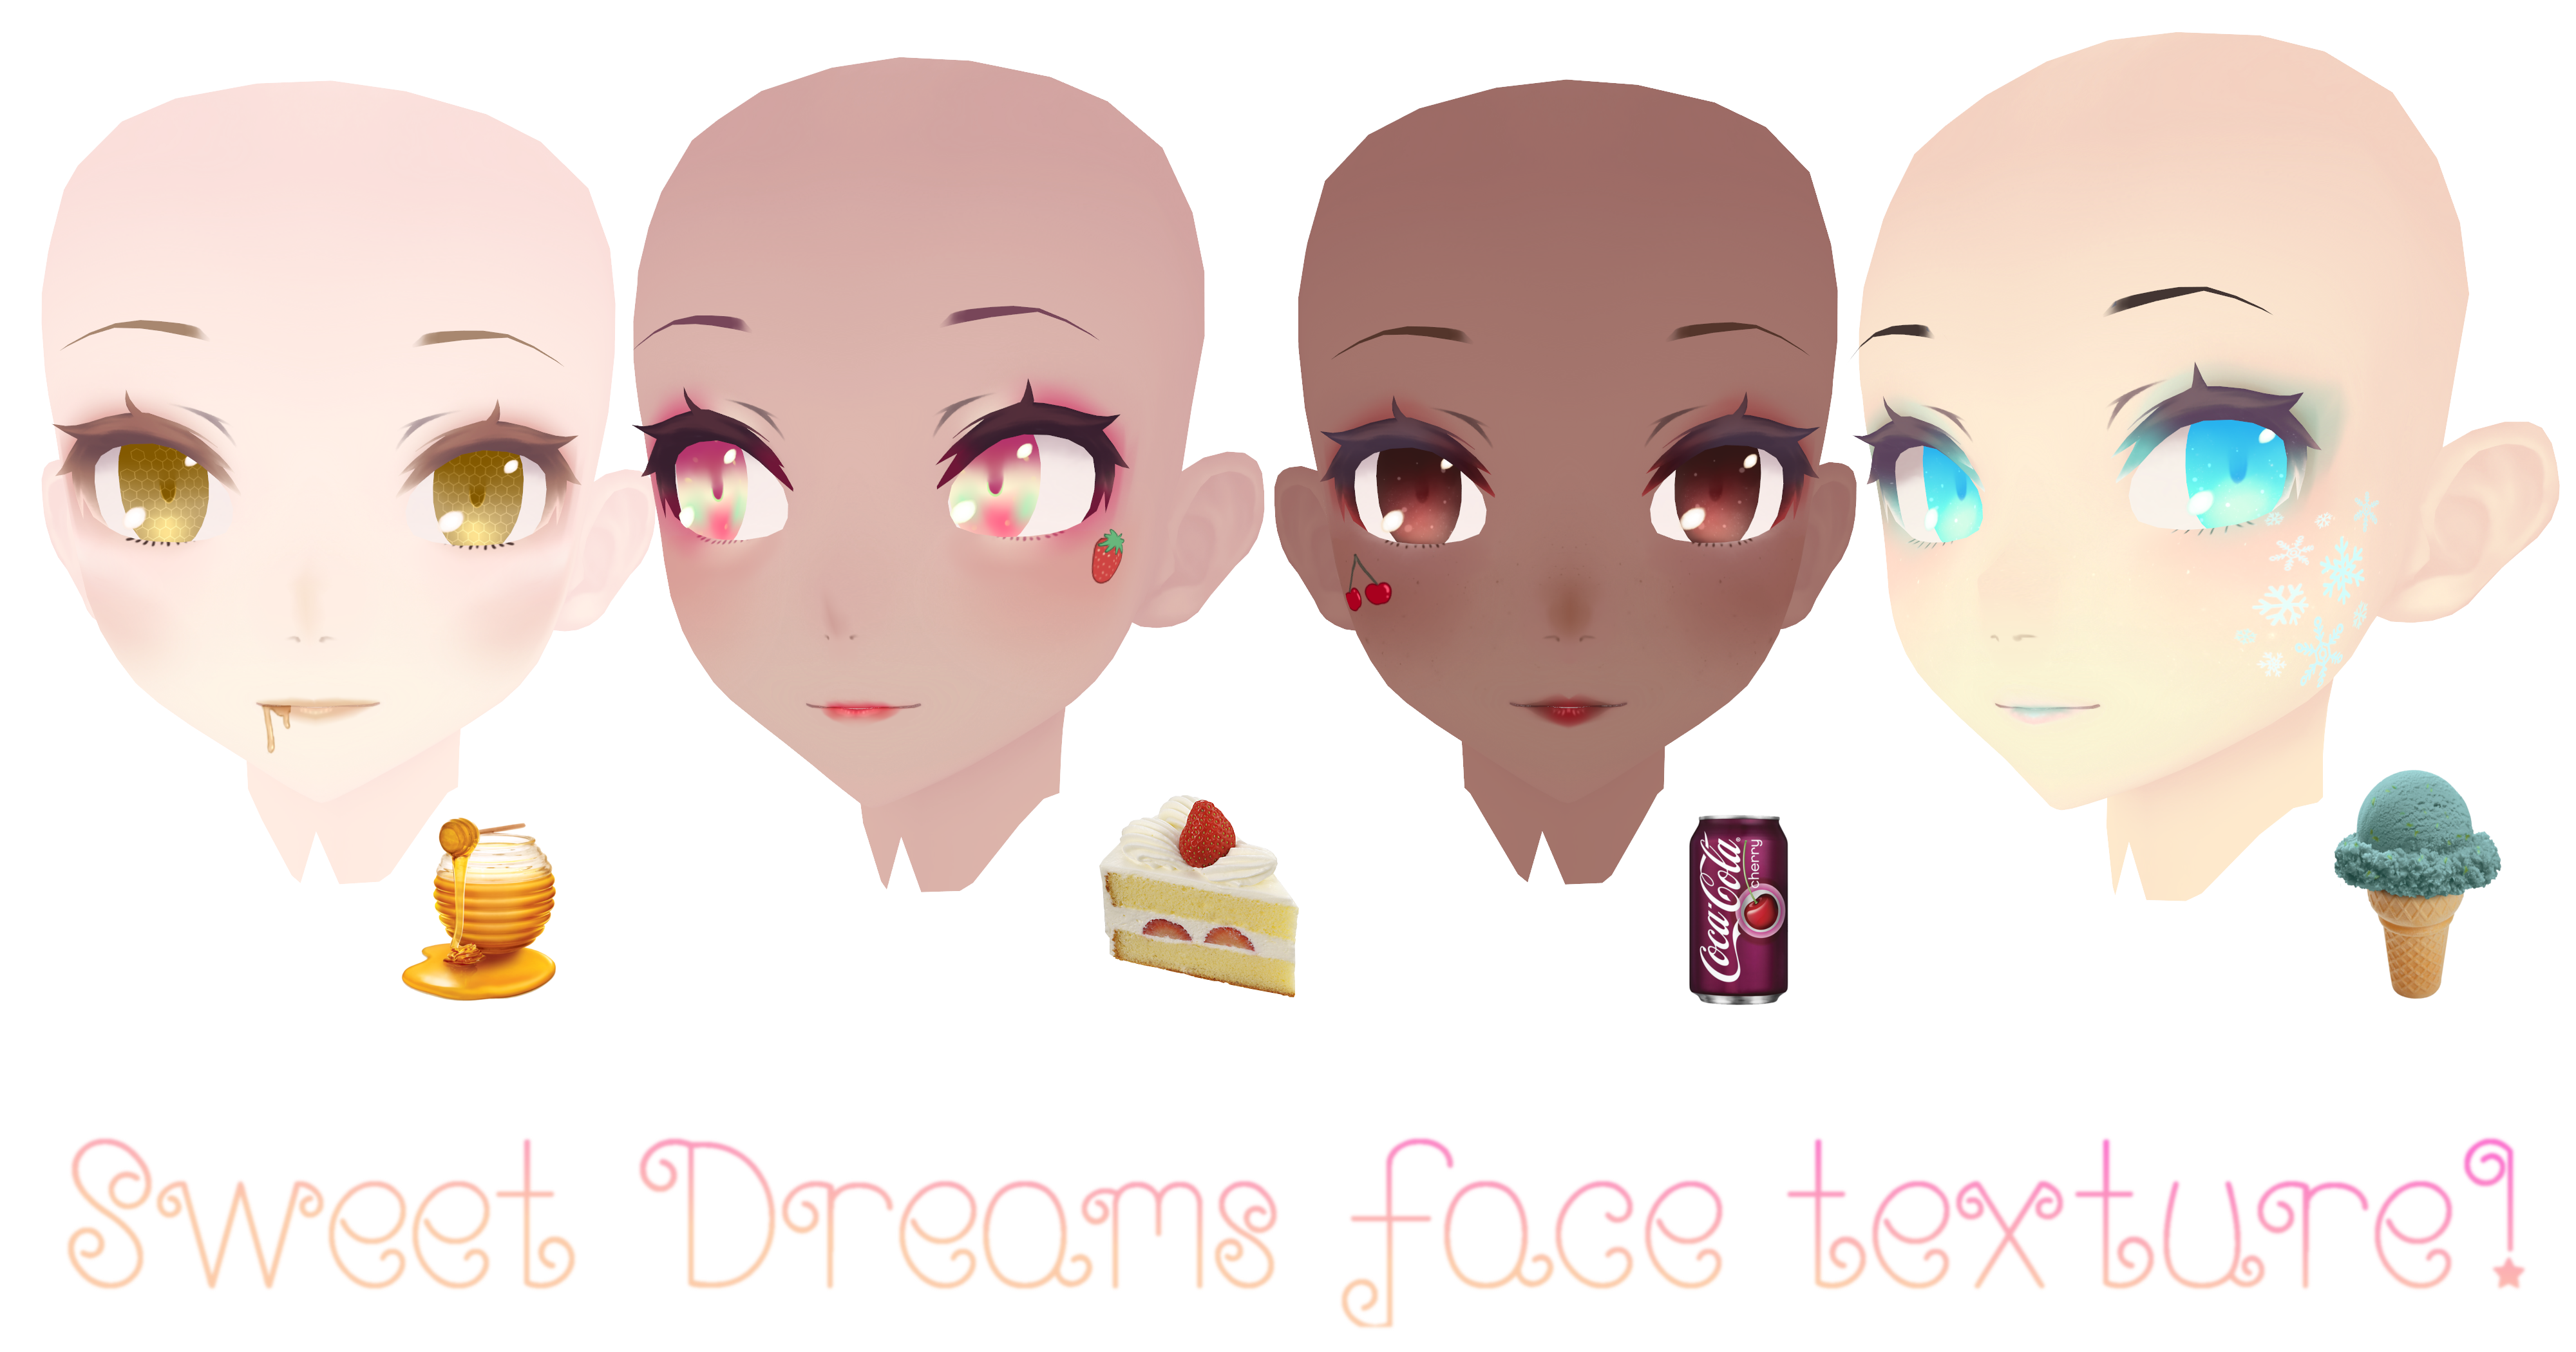 TDA Sweet Dreams face texture DOWNLOAD by Sugatsunee